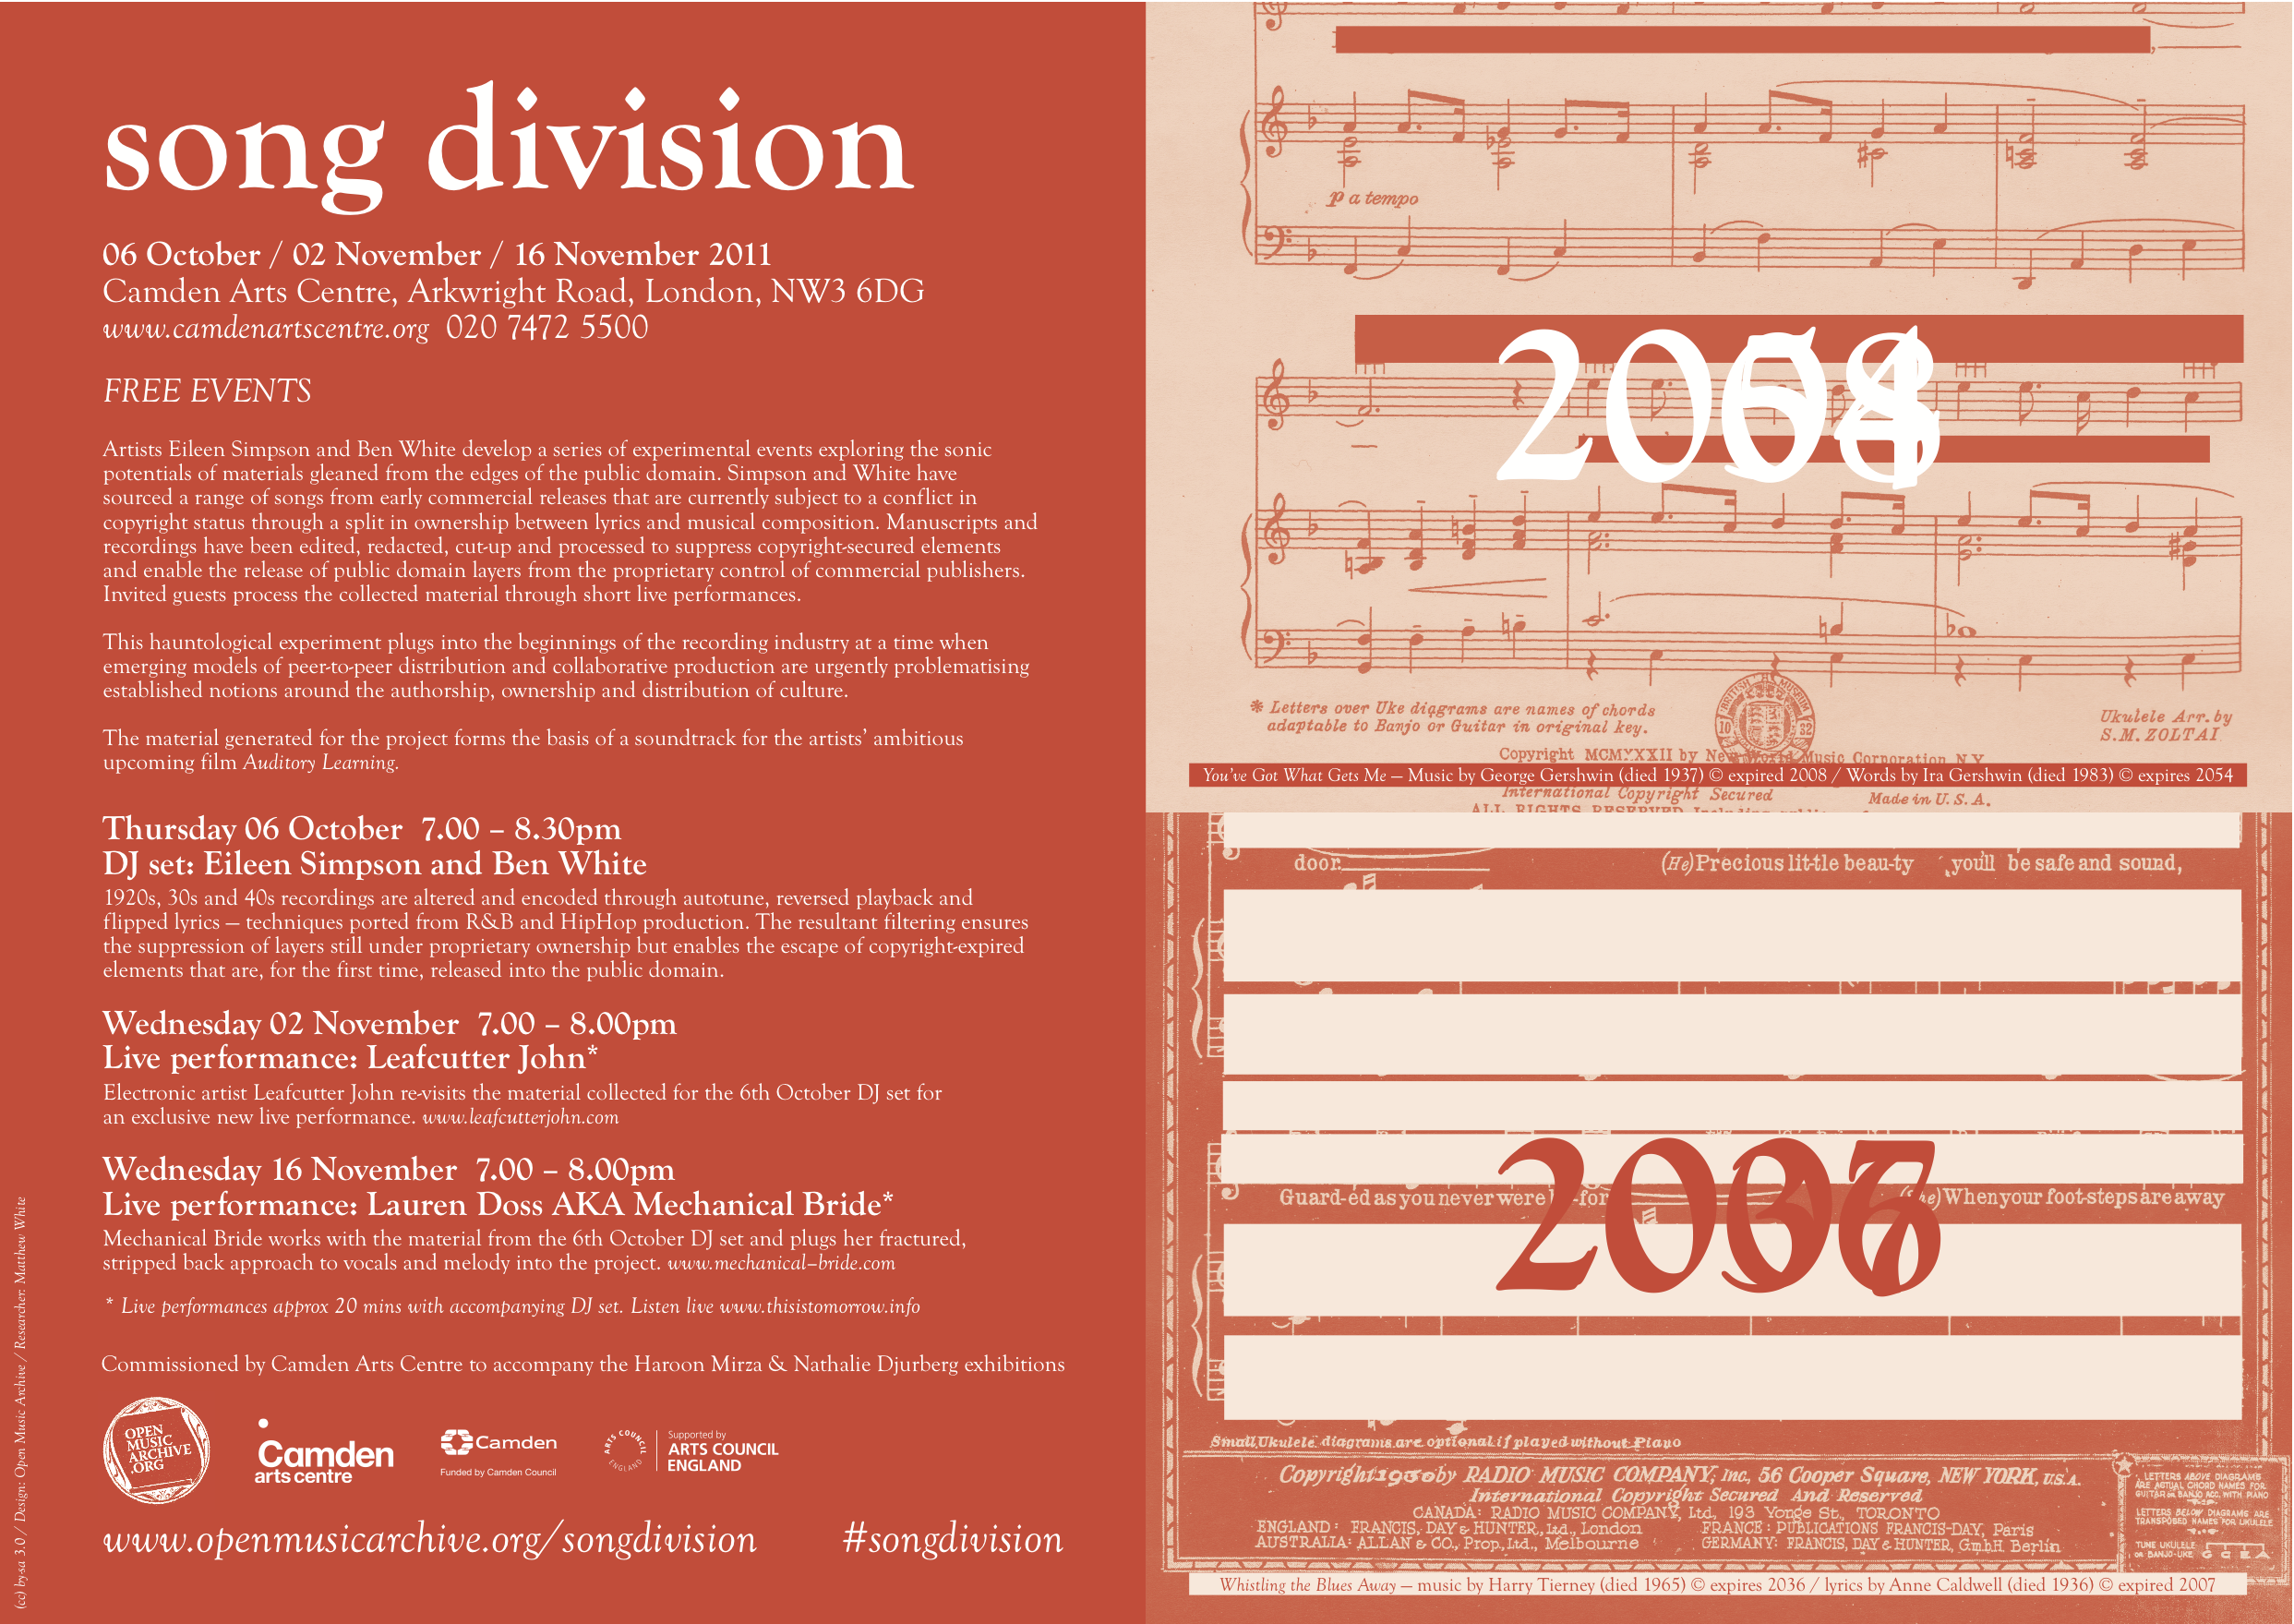 Song-division-poster-back.png